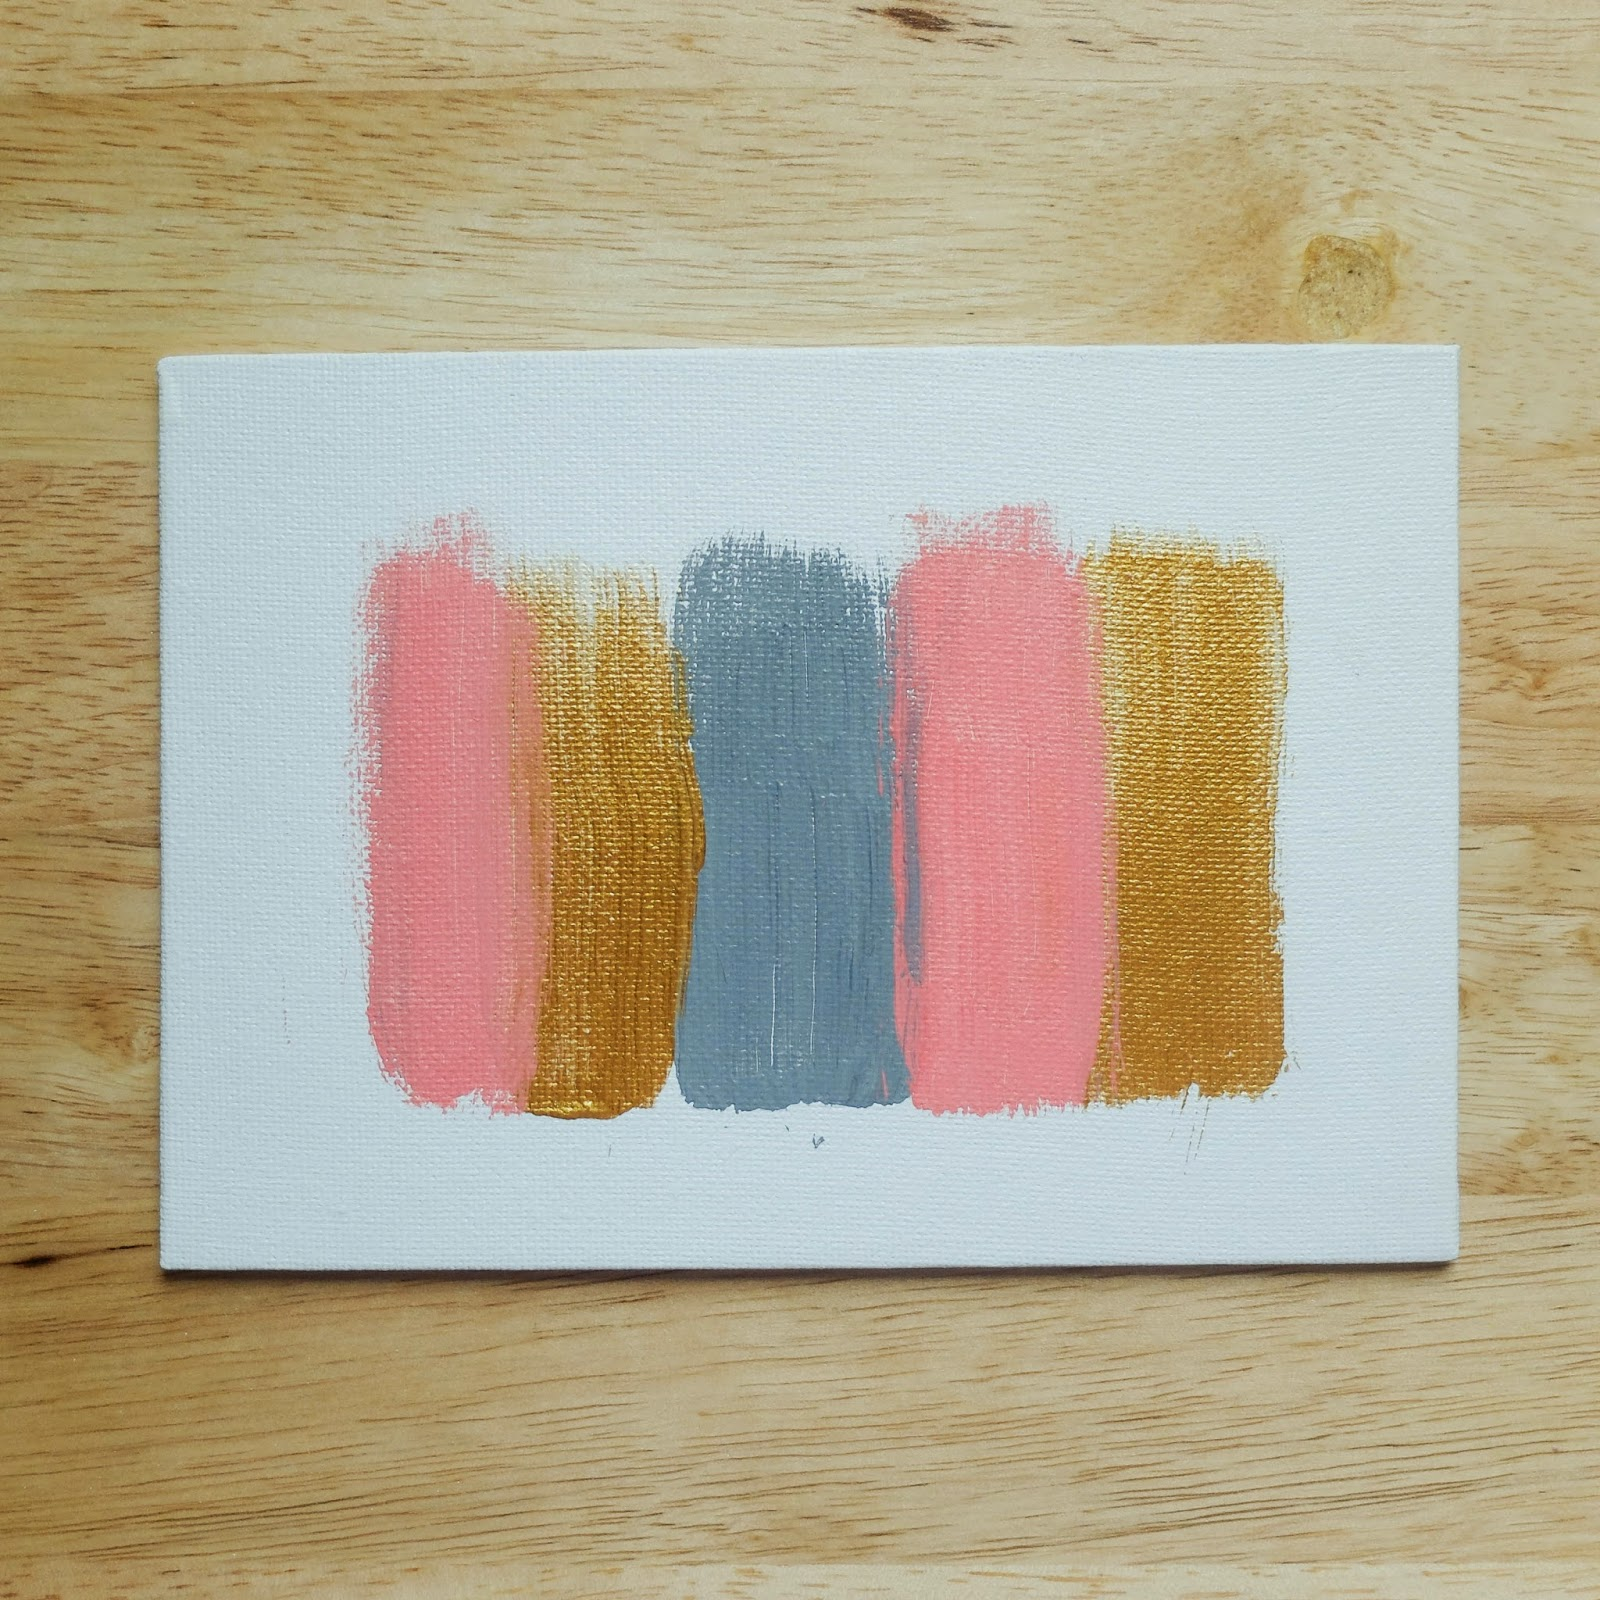 Swatch painting 002